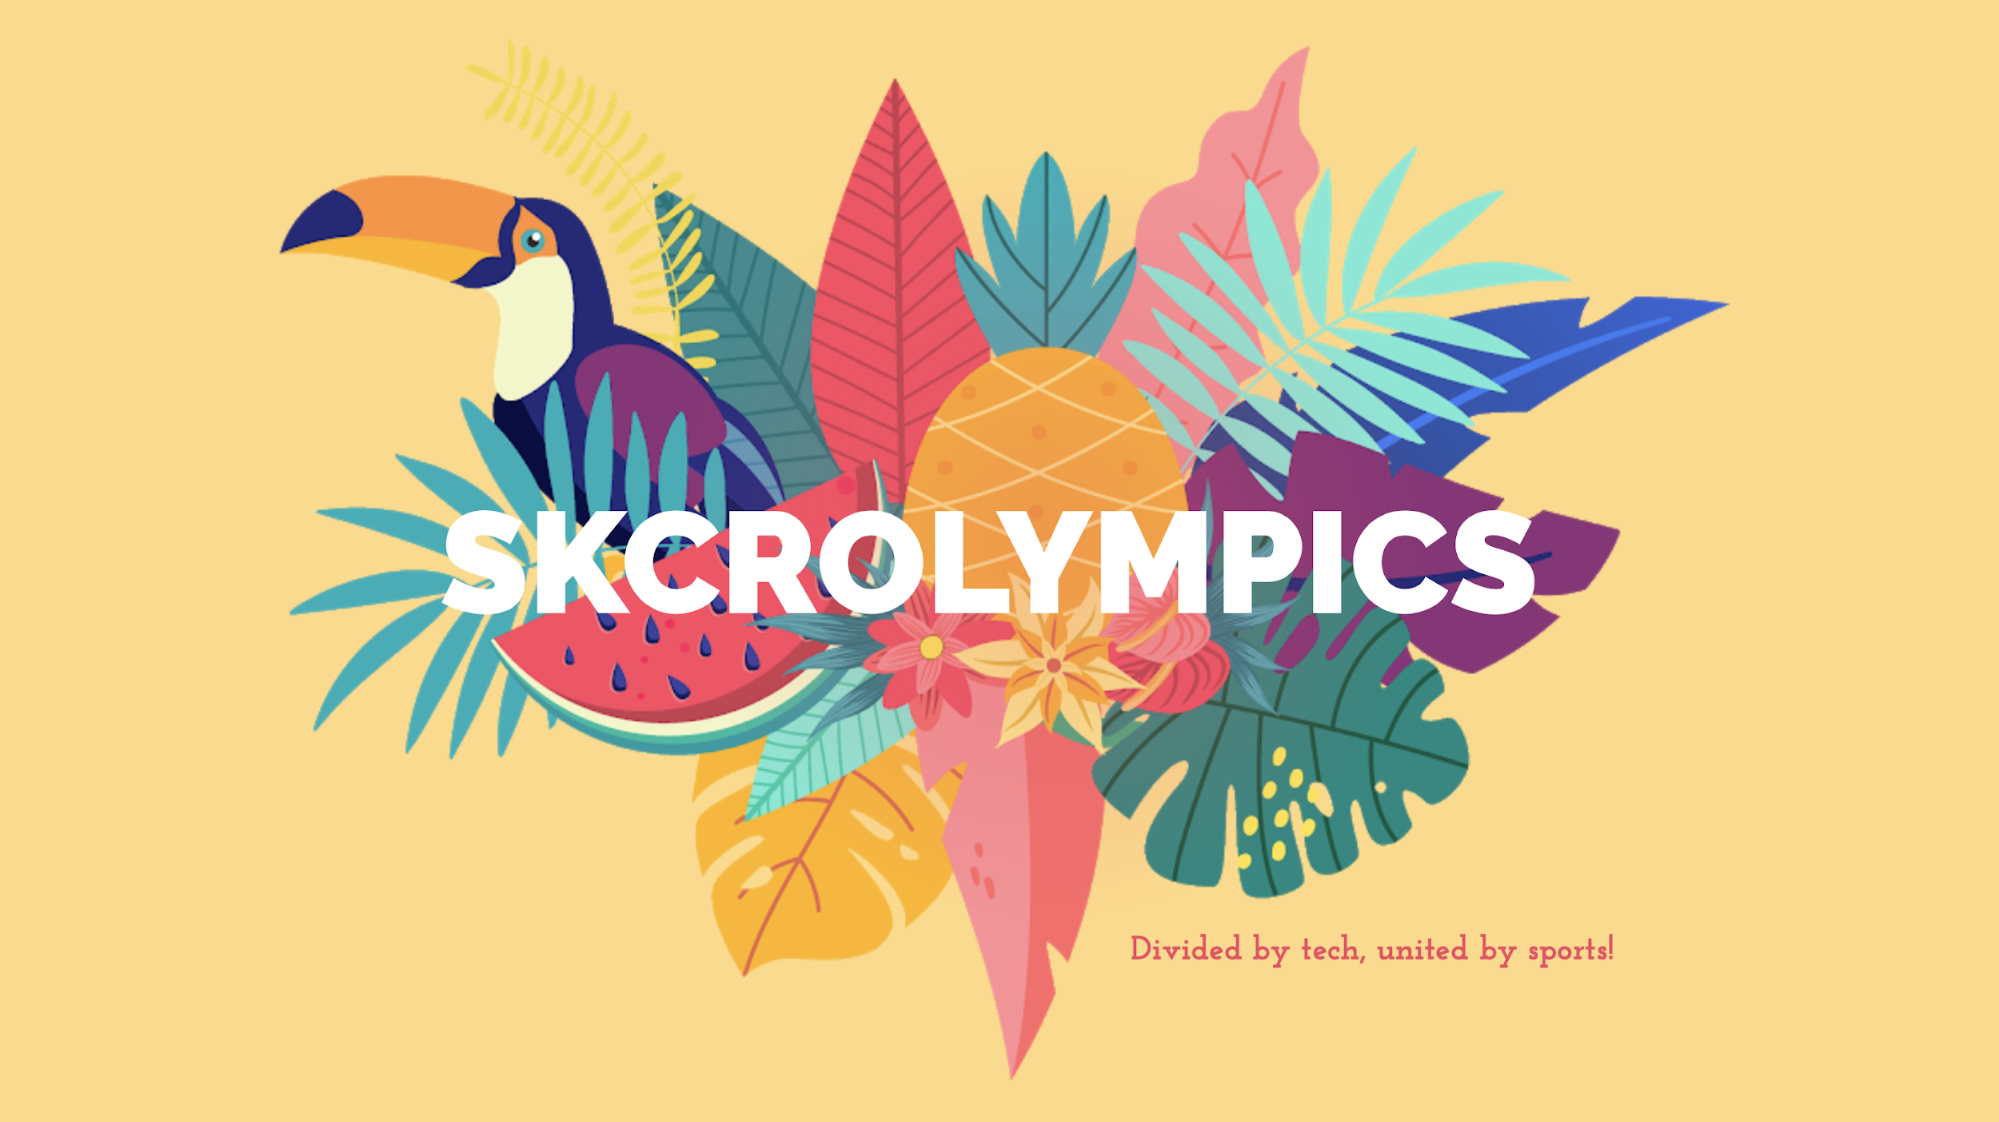 Bored at work? Try Skcrolympics!